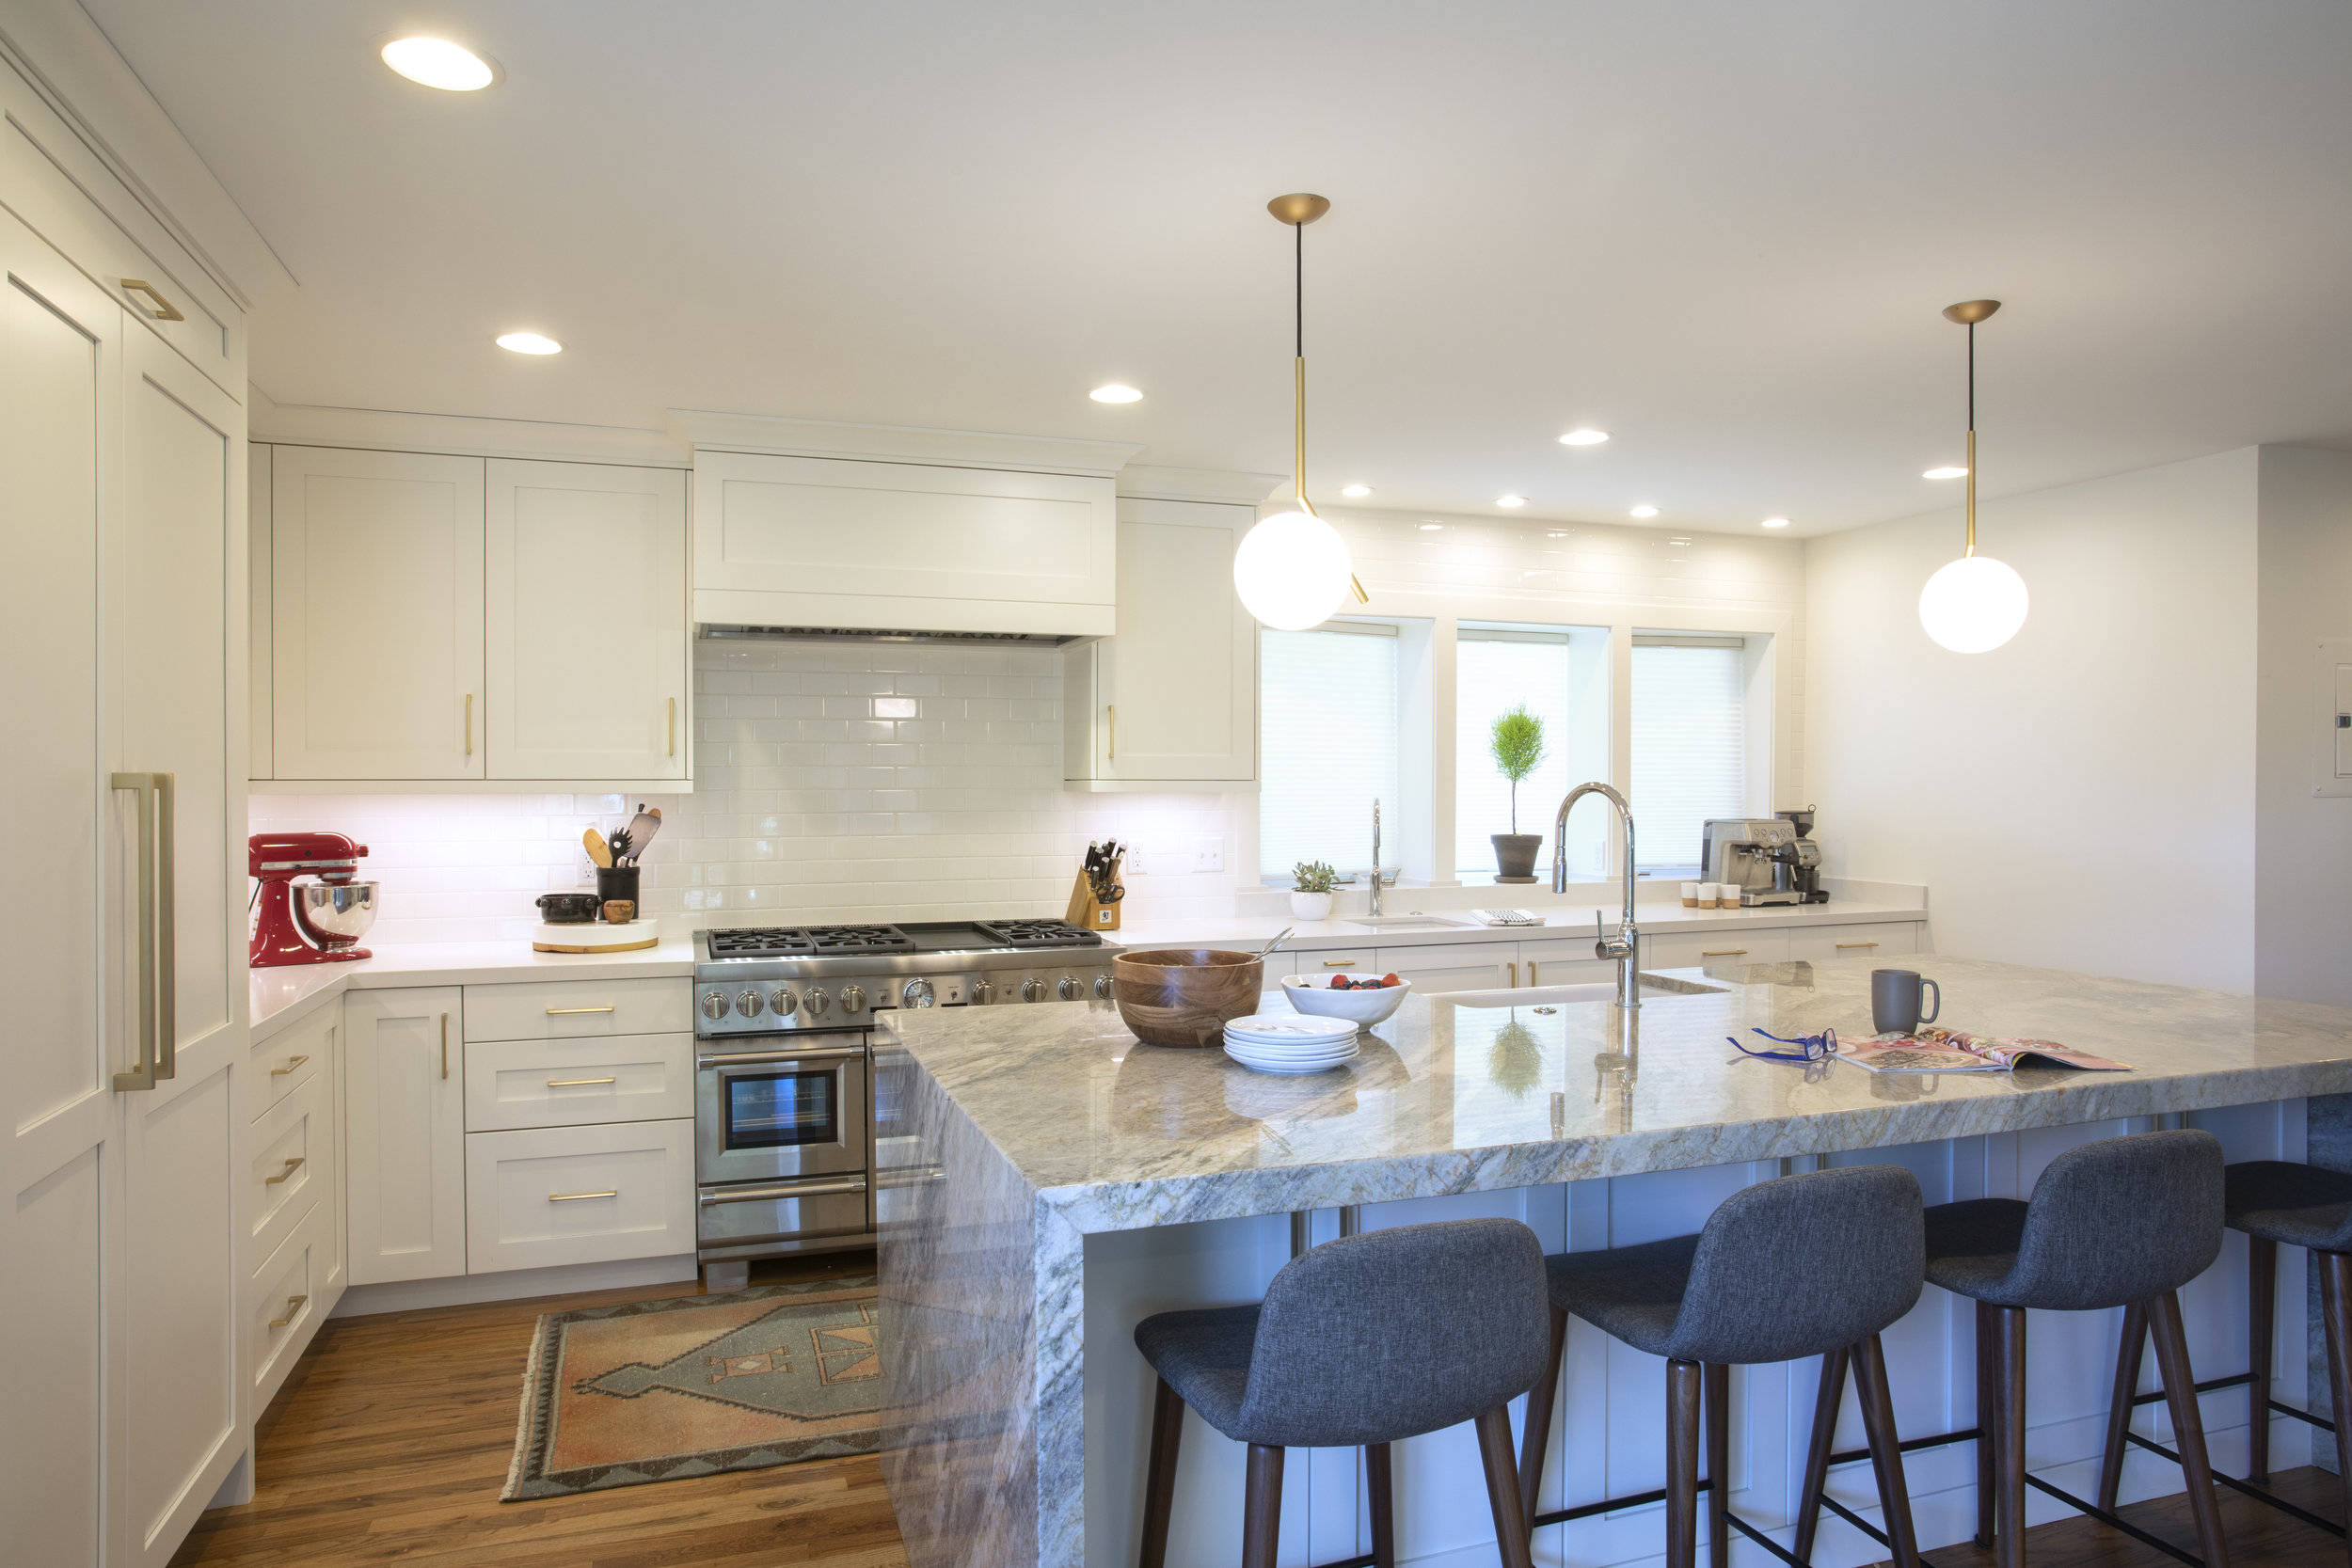 005 JAID  Crest View Kitchen June 2019.jpg